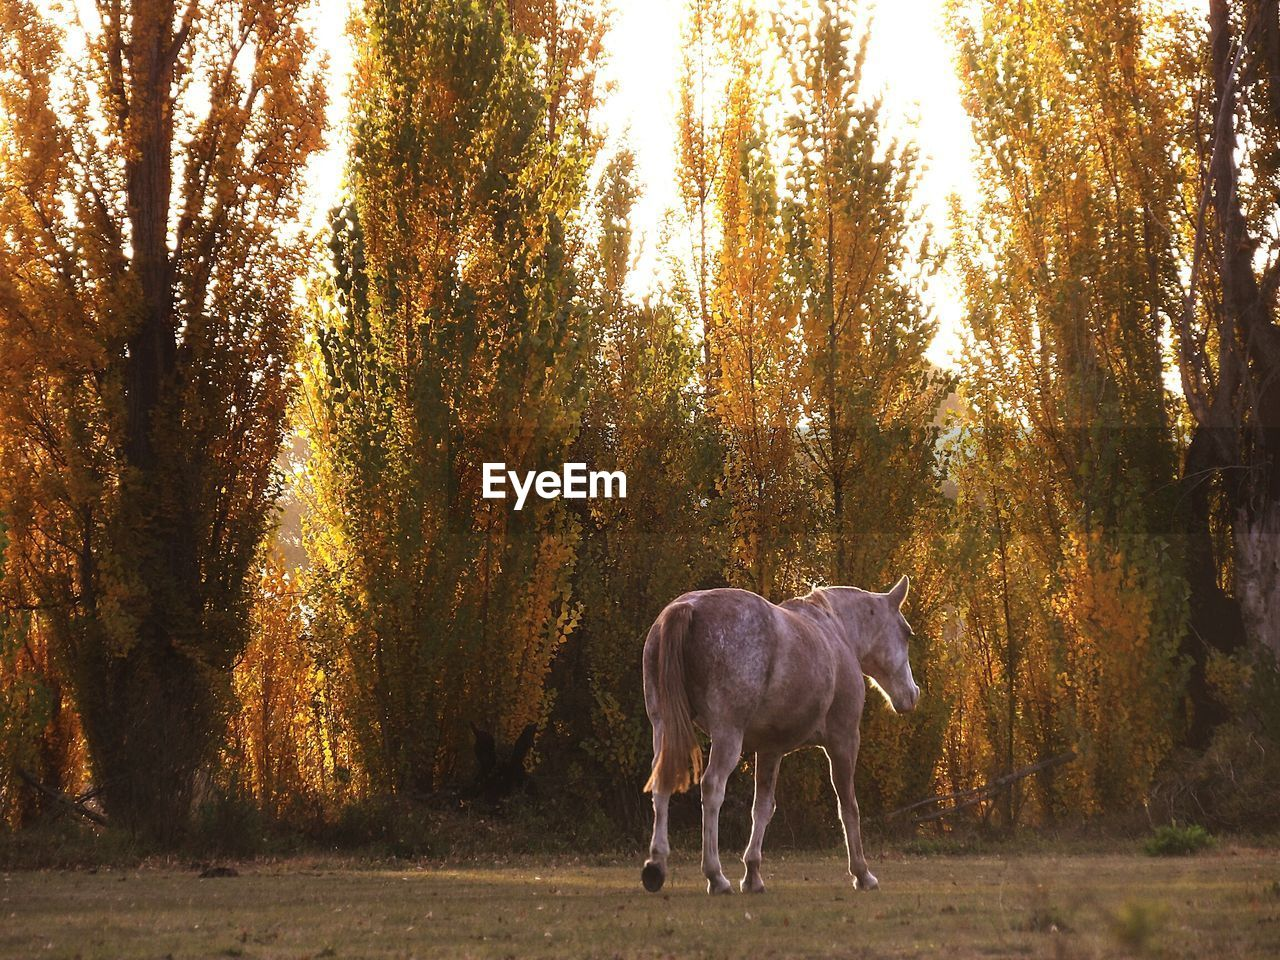 Rear view of a horse against trees